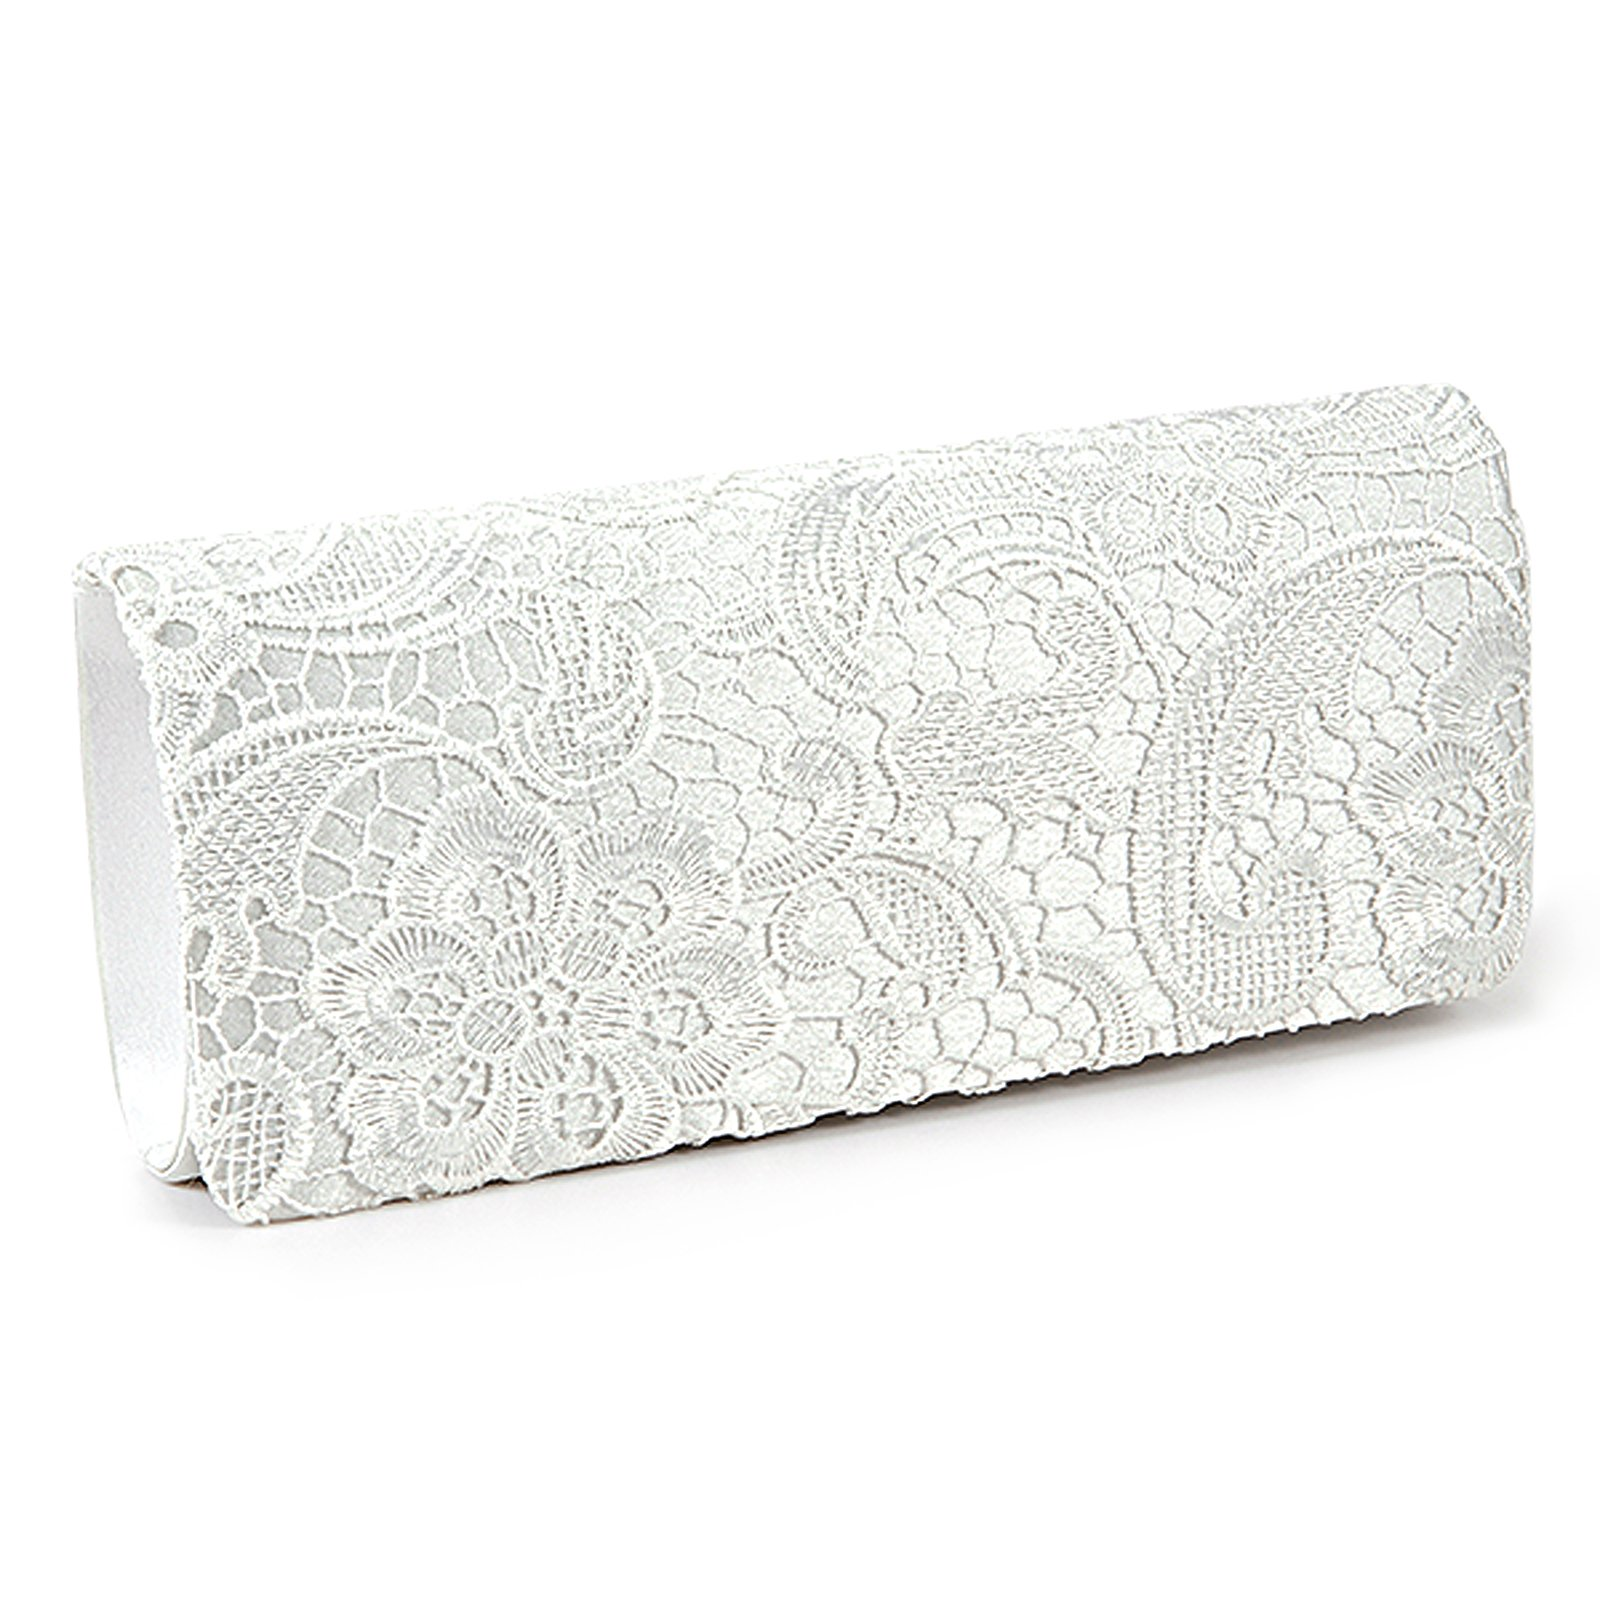 SCYL women Lace Floral Satchel white clutch bag for wedding, Evening Bags Purses and Handbags women clutch bag casual clutch purses and handbags evening clutch bags women pu leather handbags ladies hand bags yhb141 142